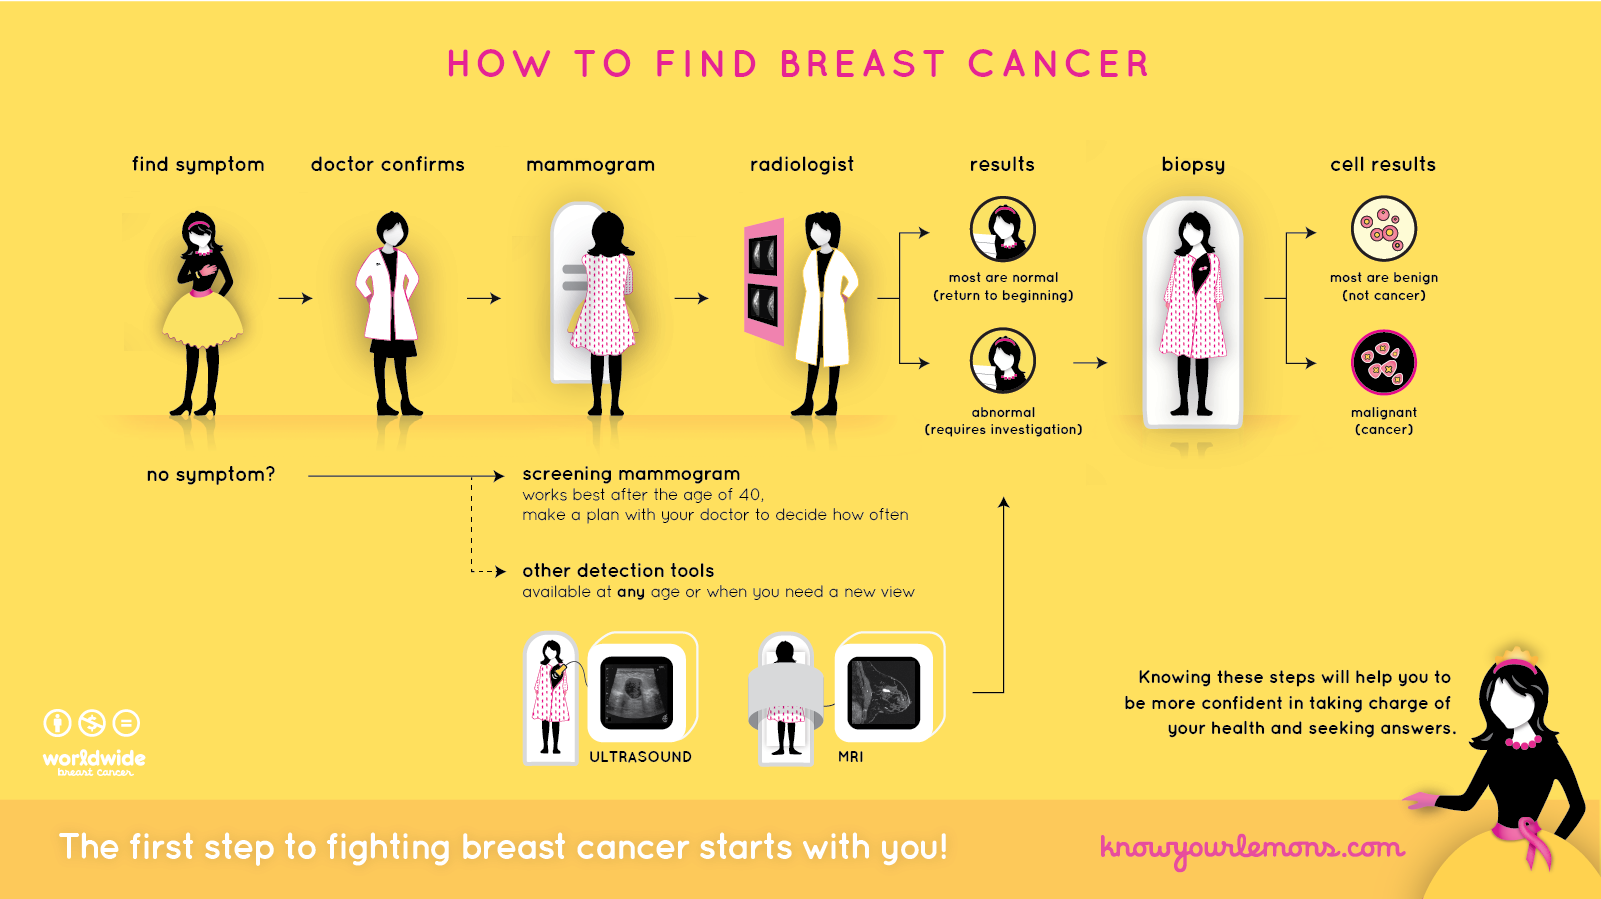 how to find breast cancer